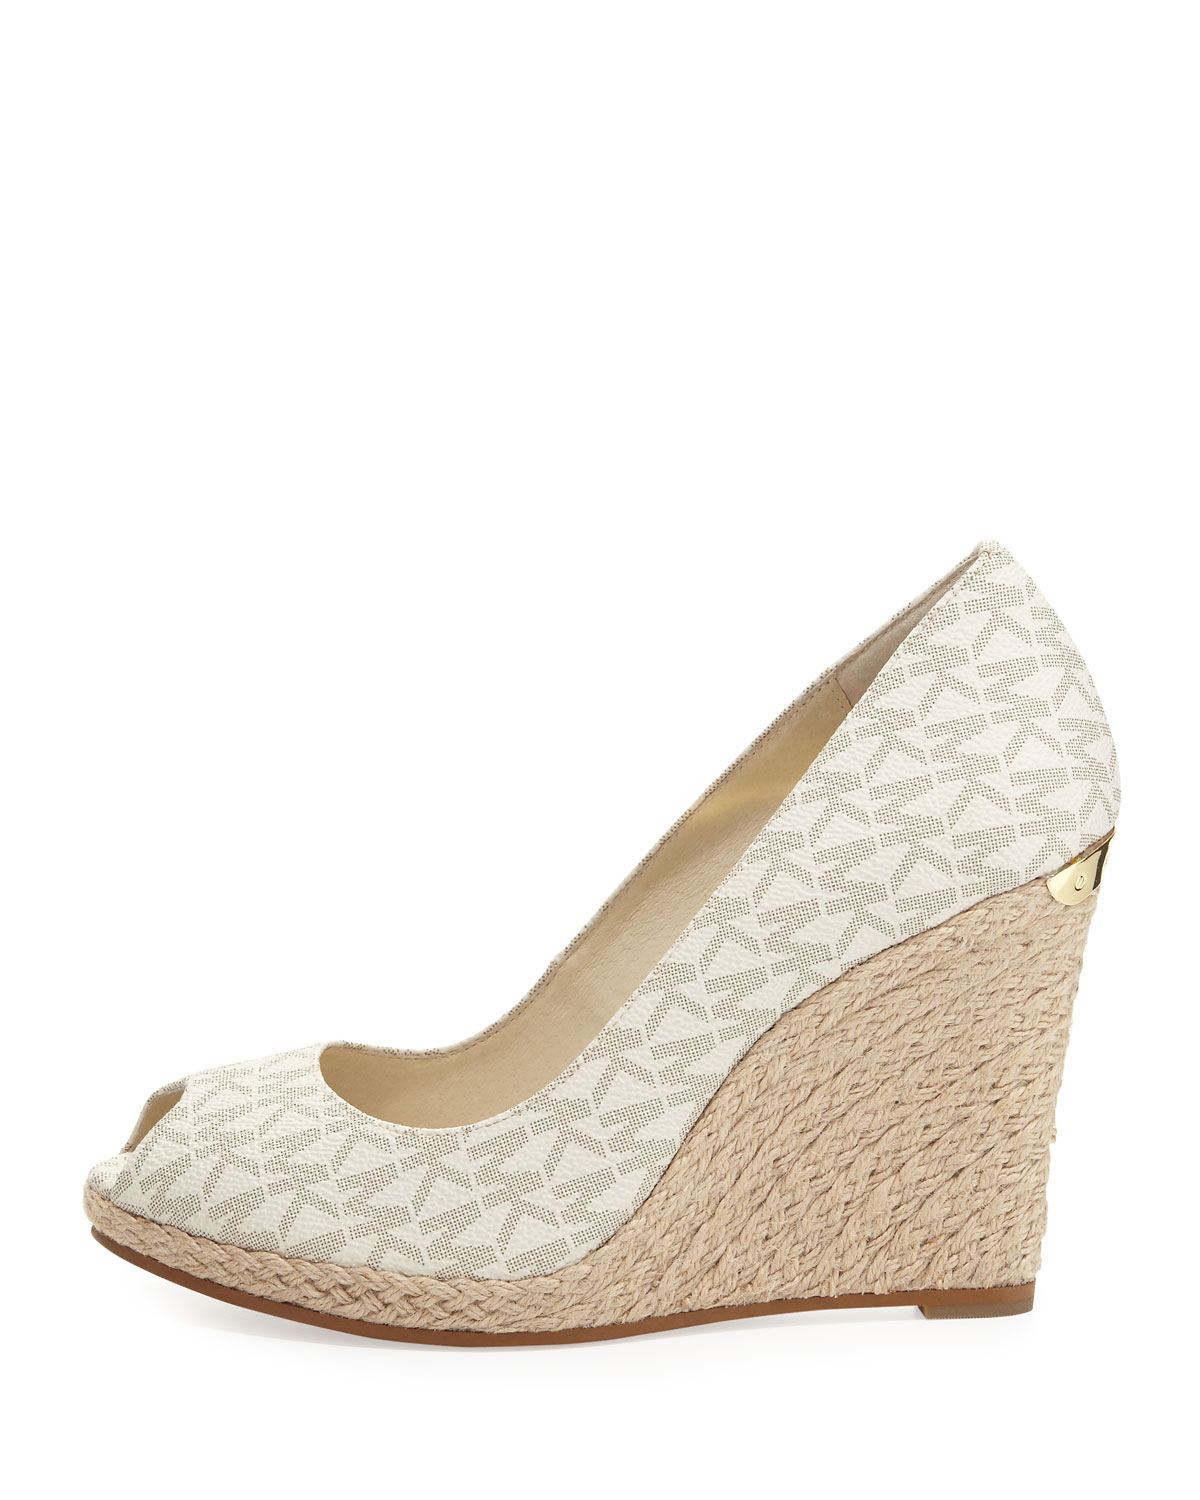 2adb2c9b27a Lyst - MICHAEL Michael Kors Keegan Logo Wedge in White